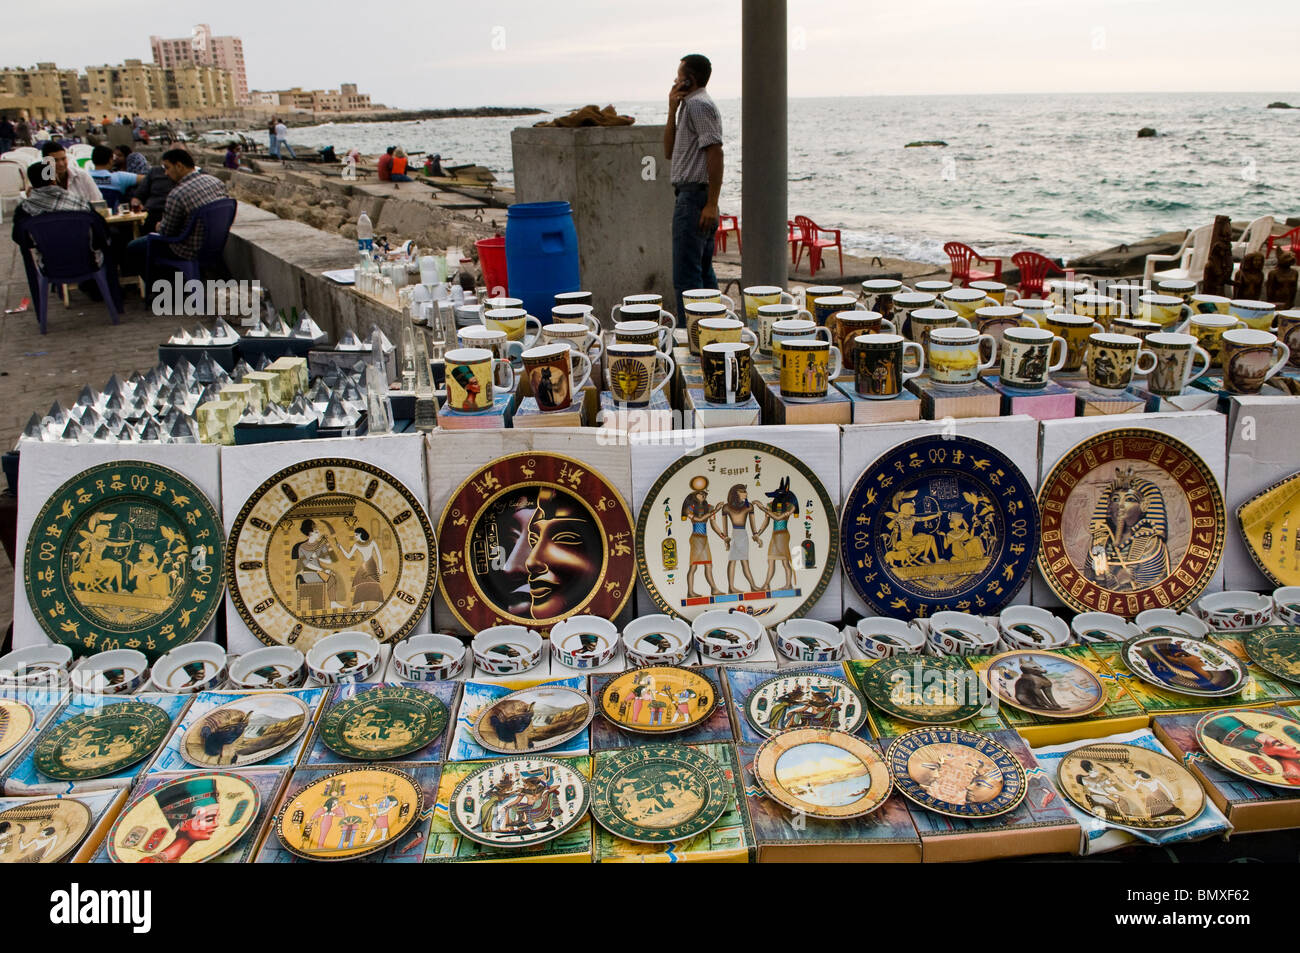 Souvenir Shop Displaying Ceramic Plates In Alexandria, Egypt  Stock Image